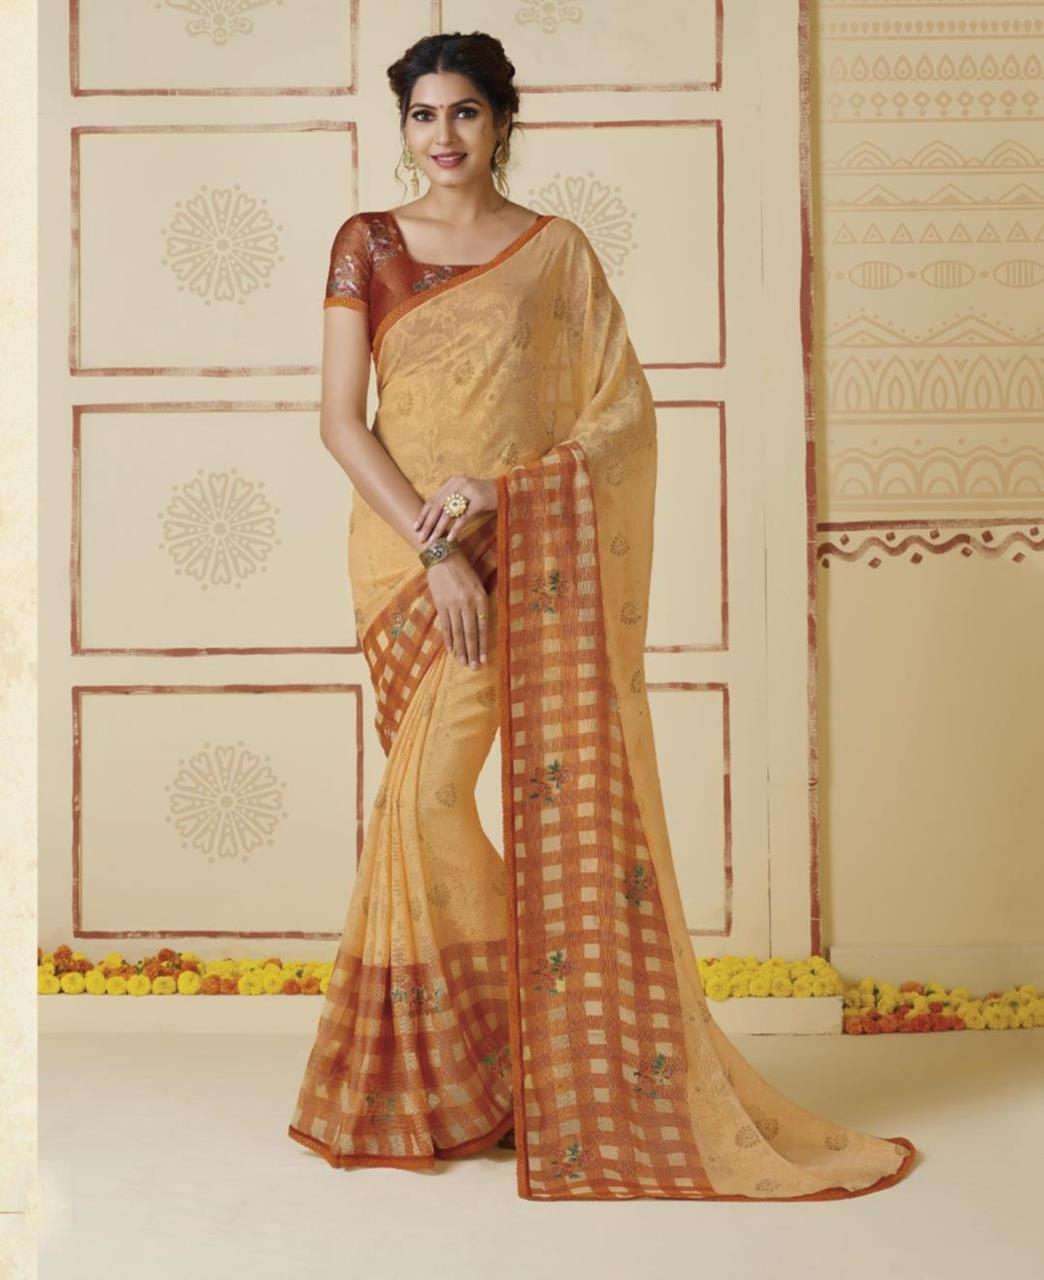 Printed Chiffon Saree in Rust Chikoo